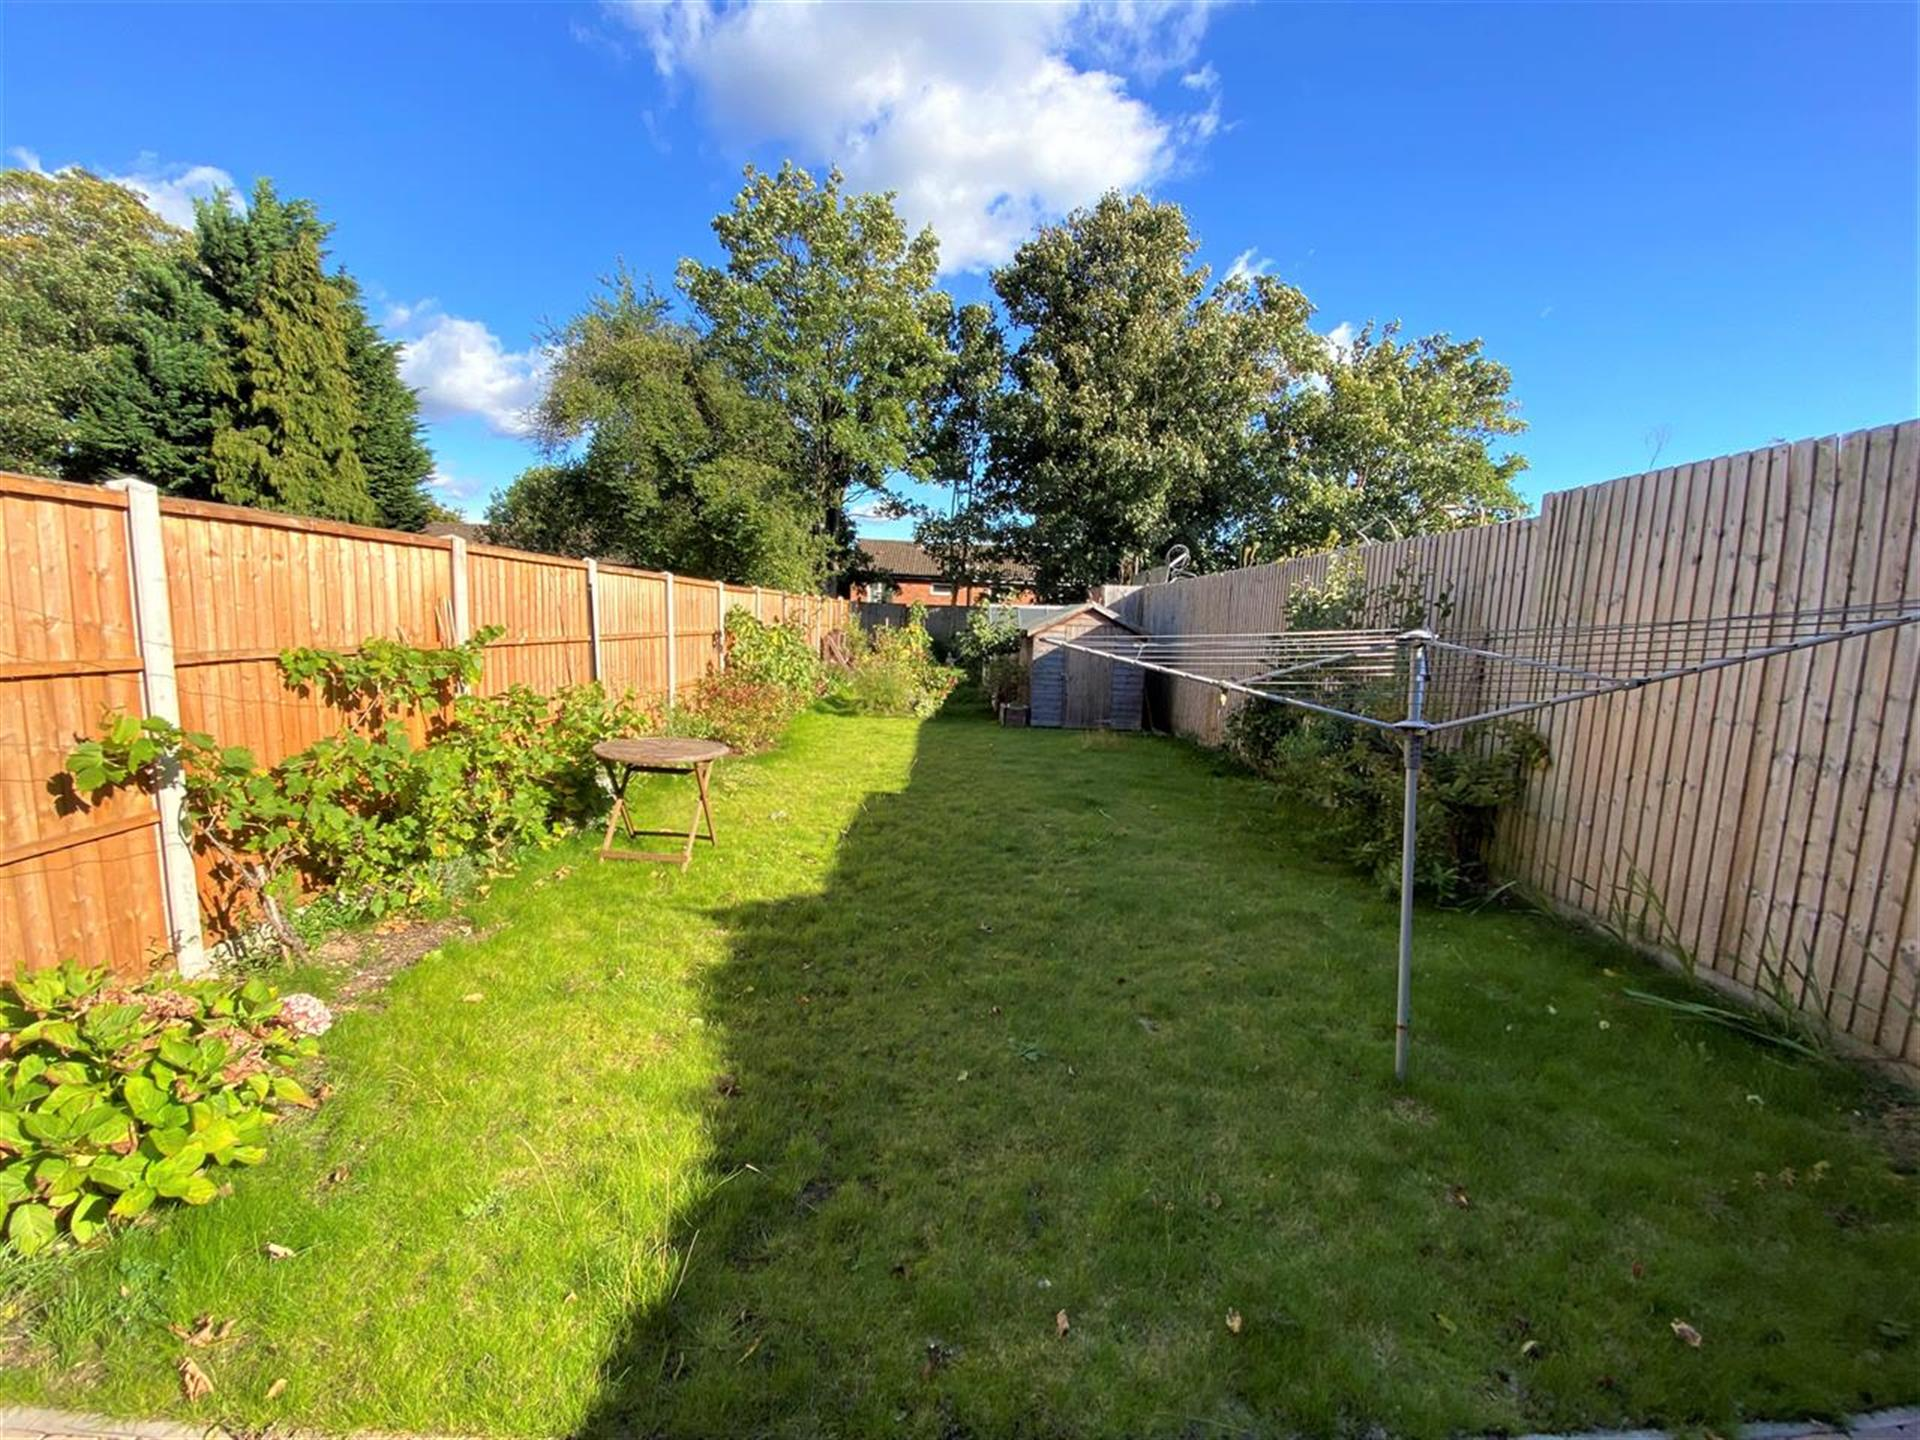 4 Bedroom Semi-detached House For Sale - Rear Garden